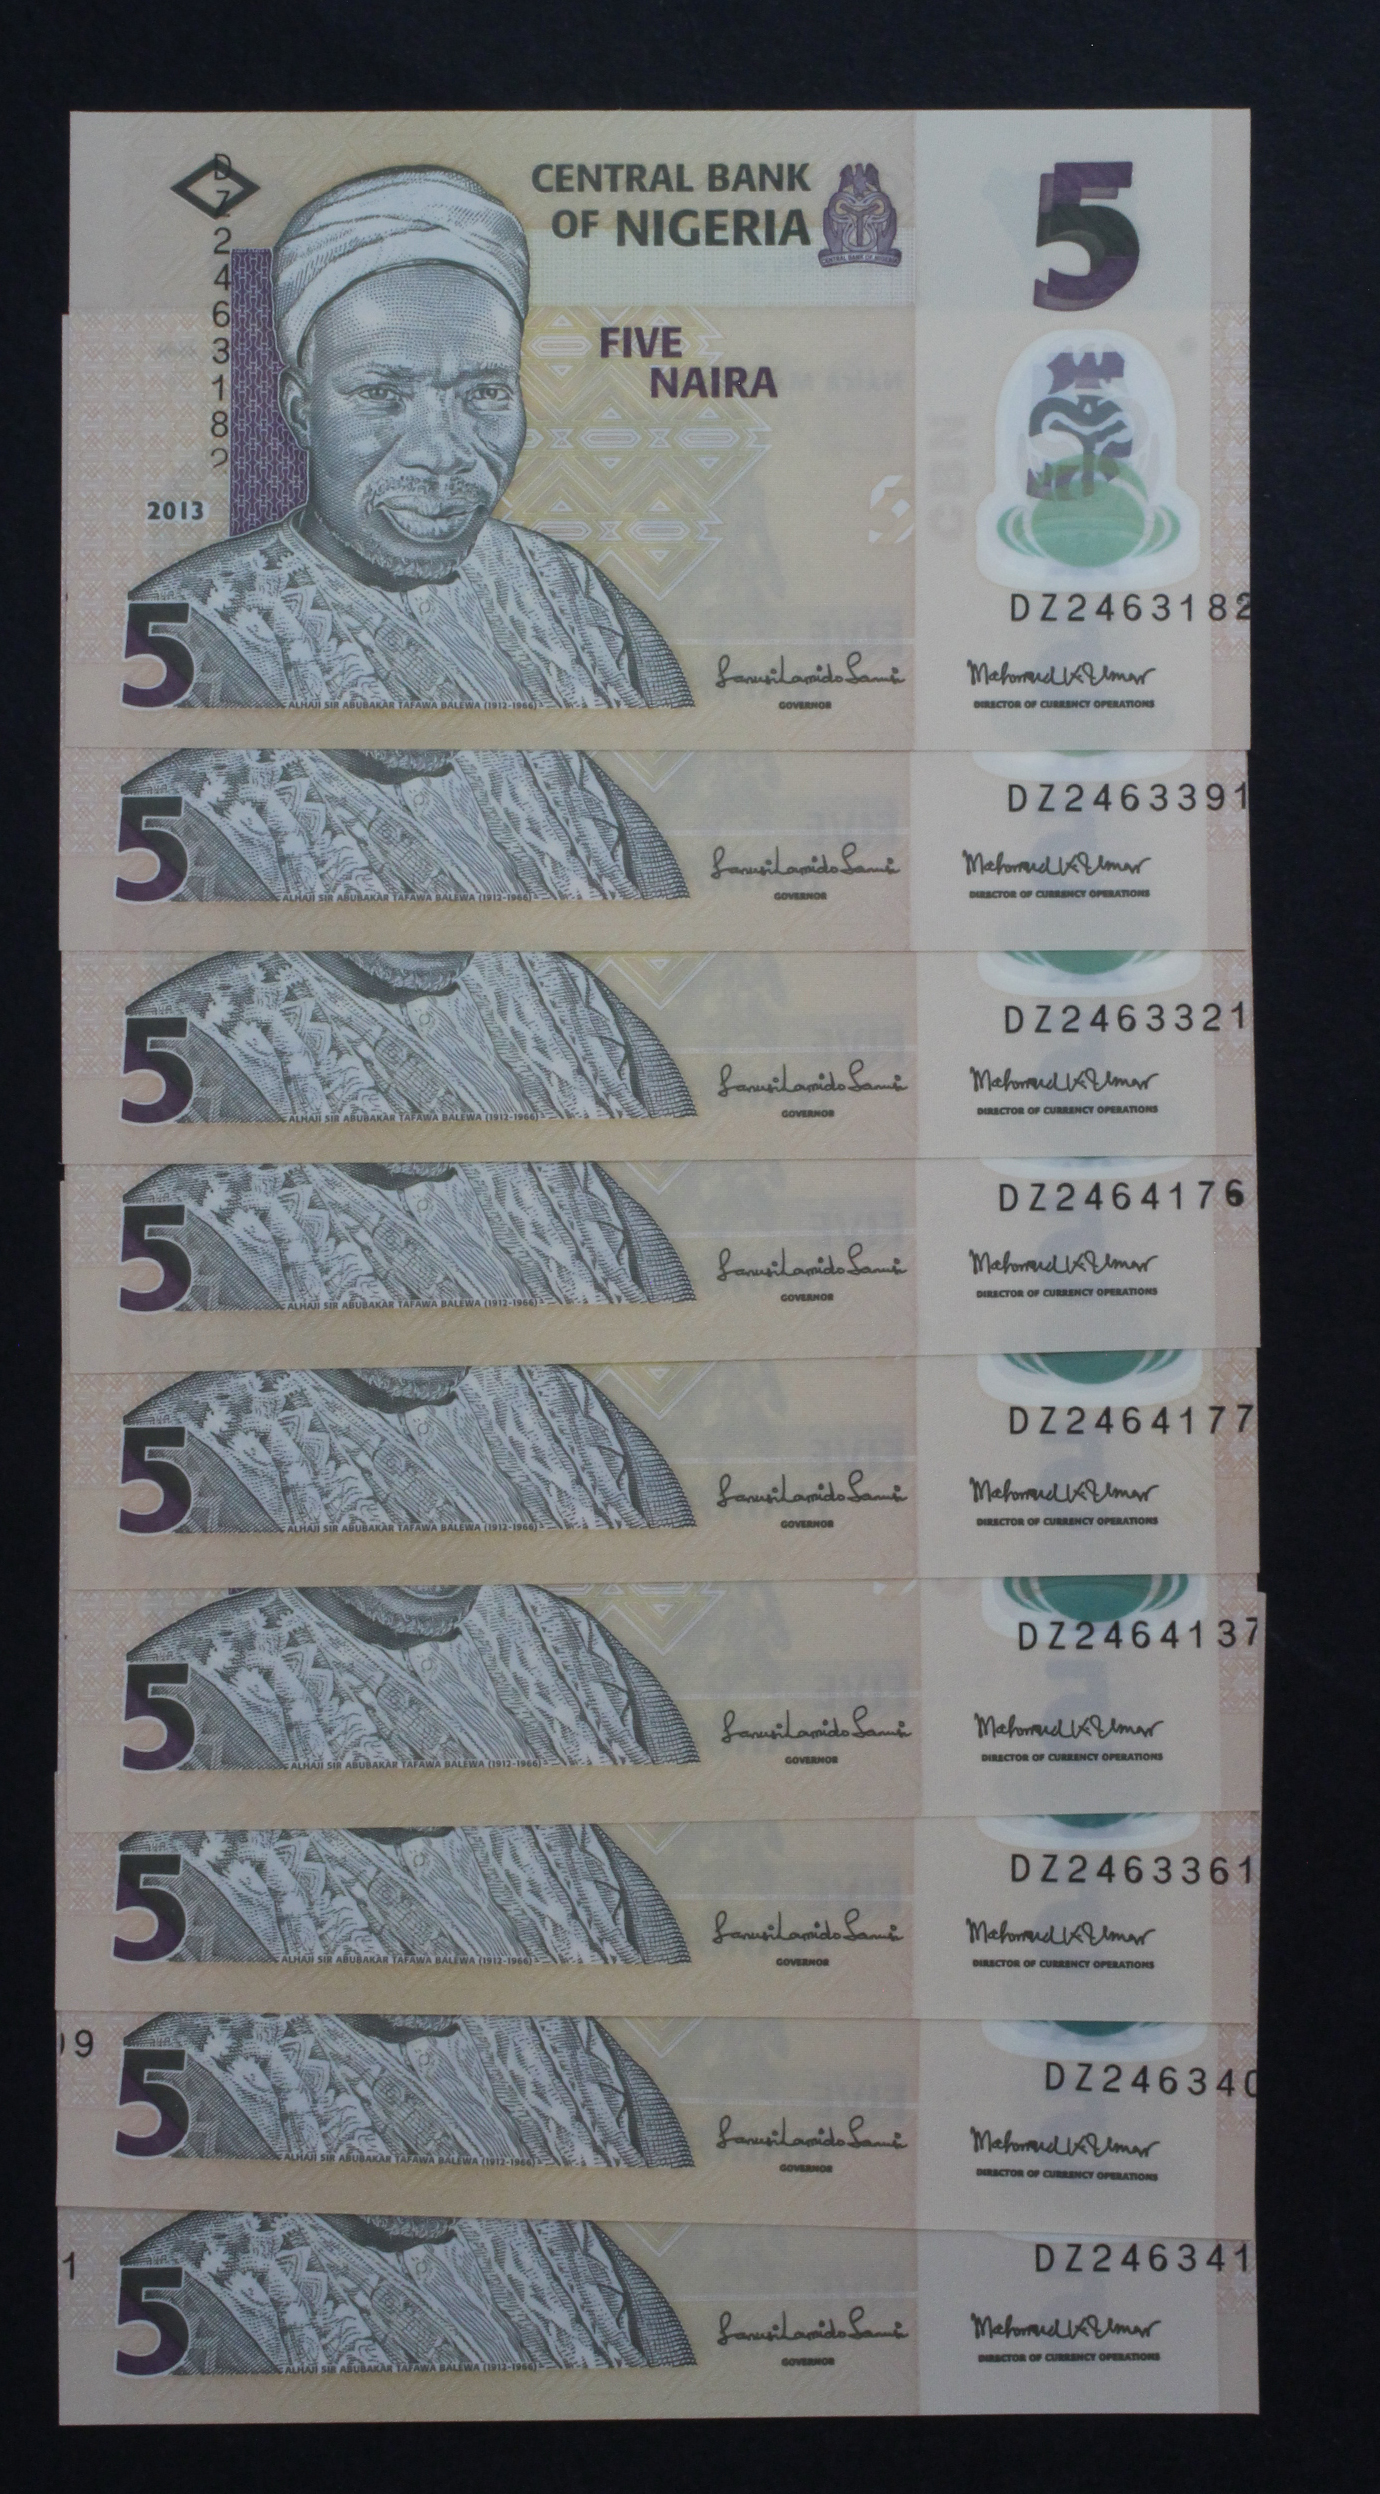 Nigeria (9), 5 Naira ERROR dated 2013, an unusual REPLACEMENT 'DZ' prefix error with the both serial